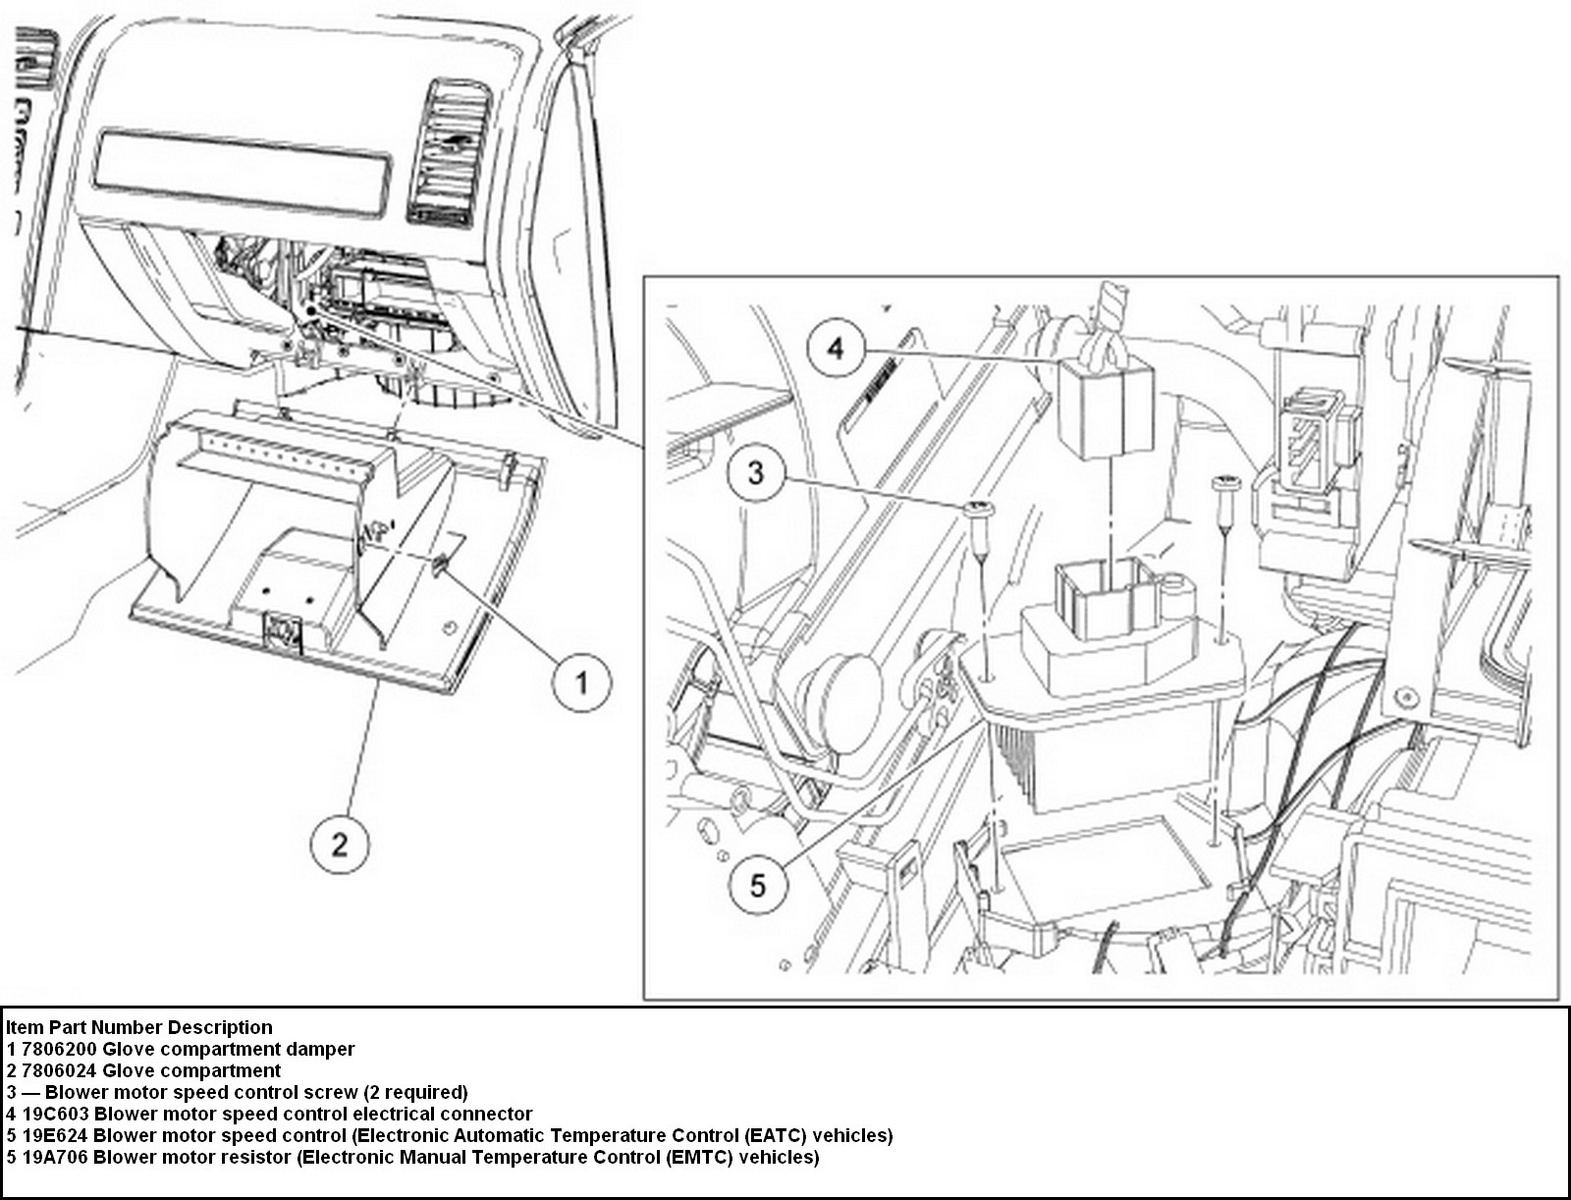 2pix9 1997 Ford F250 Pu Air Flow Fron Vents further 153324 2014 Parts Diagrams Service Manual moreover Pic Transmission Cooler Lines Diagram Chart Jeep Cherokee Forum For 2000 Jeep Grand Cherokee Cooling System Diagram together with 0z45v Heater 2003 Dodge Stratus Will Not Change as well Np 231 Transfer Case Parts. on 2001 ford f250 heater core